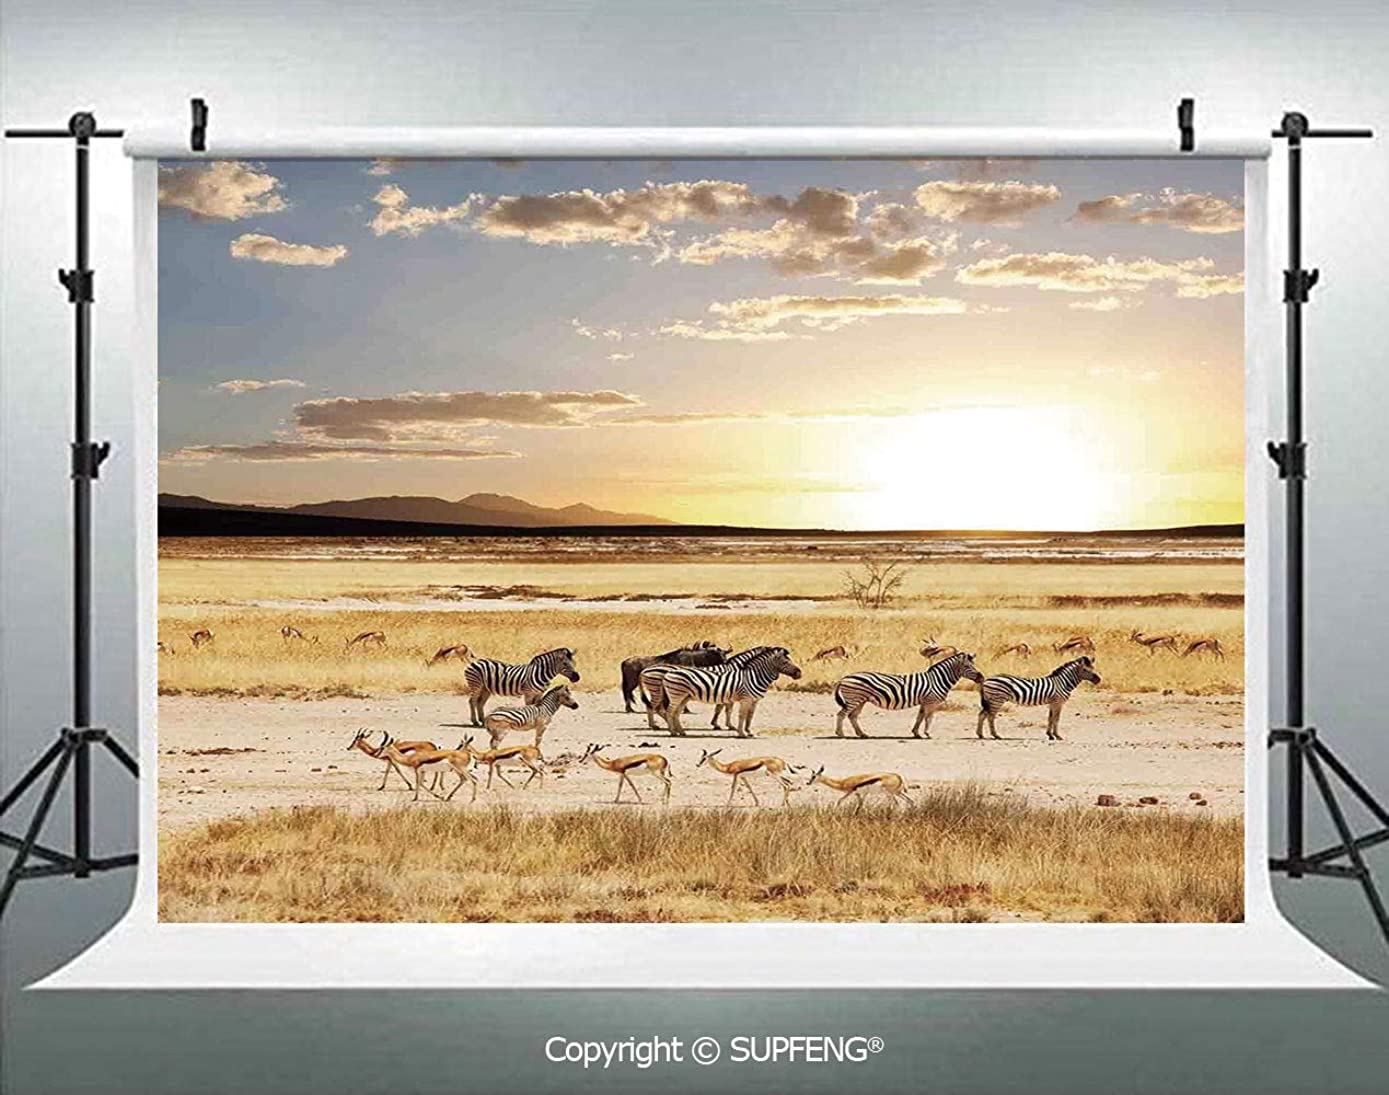 Photography Backdrops Zebras with Their Striped Coats in Savannahs Sunset Adventure Africa Wild Safari 3D Backdrops for Photography Backdrop Photo Background Studio Prop